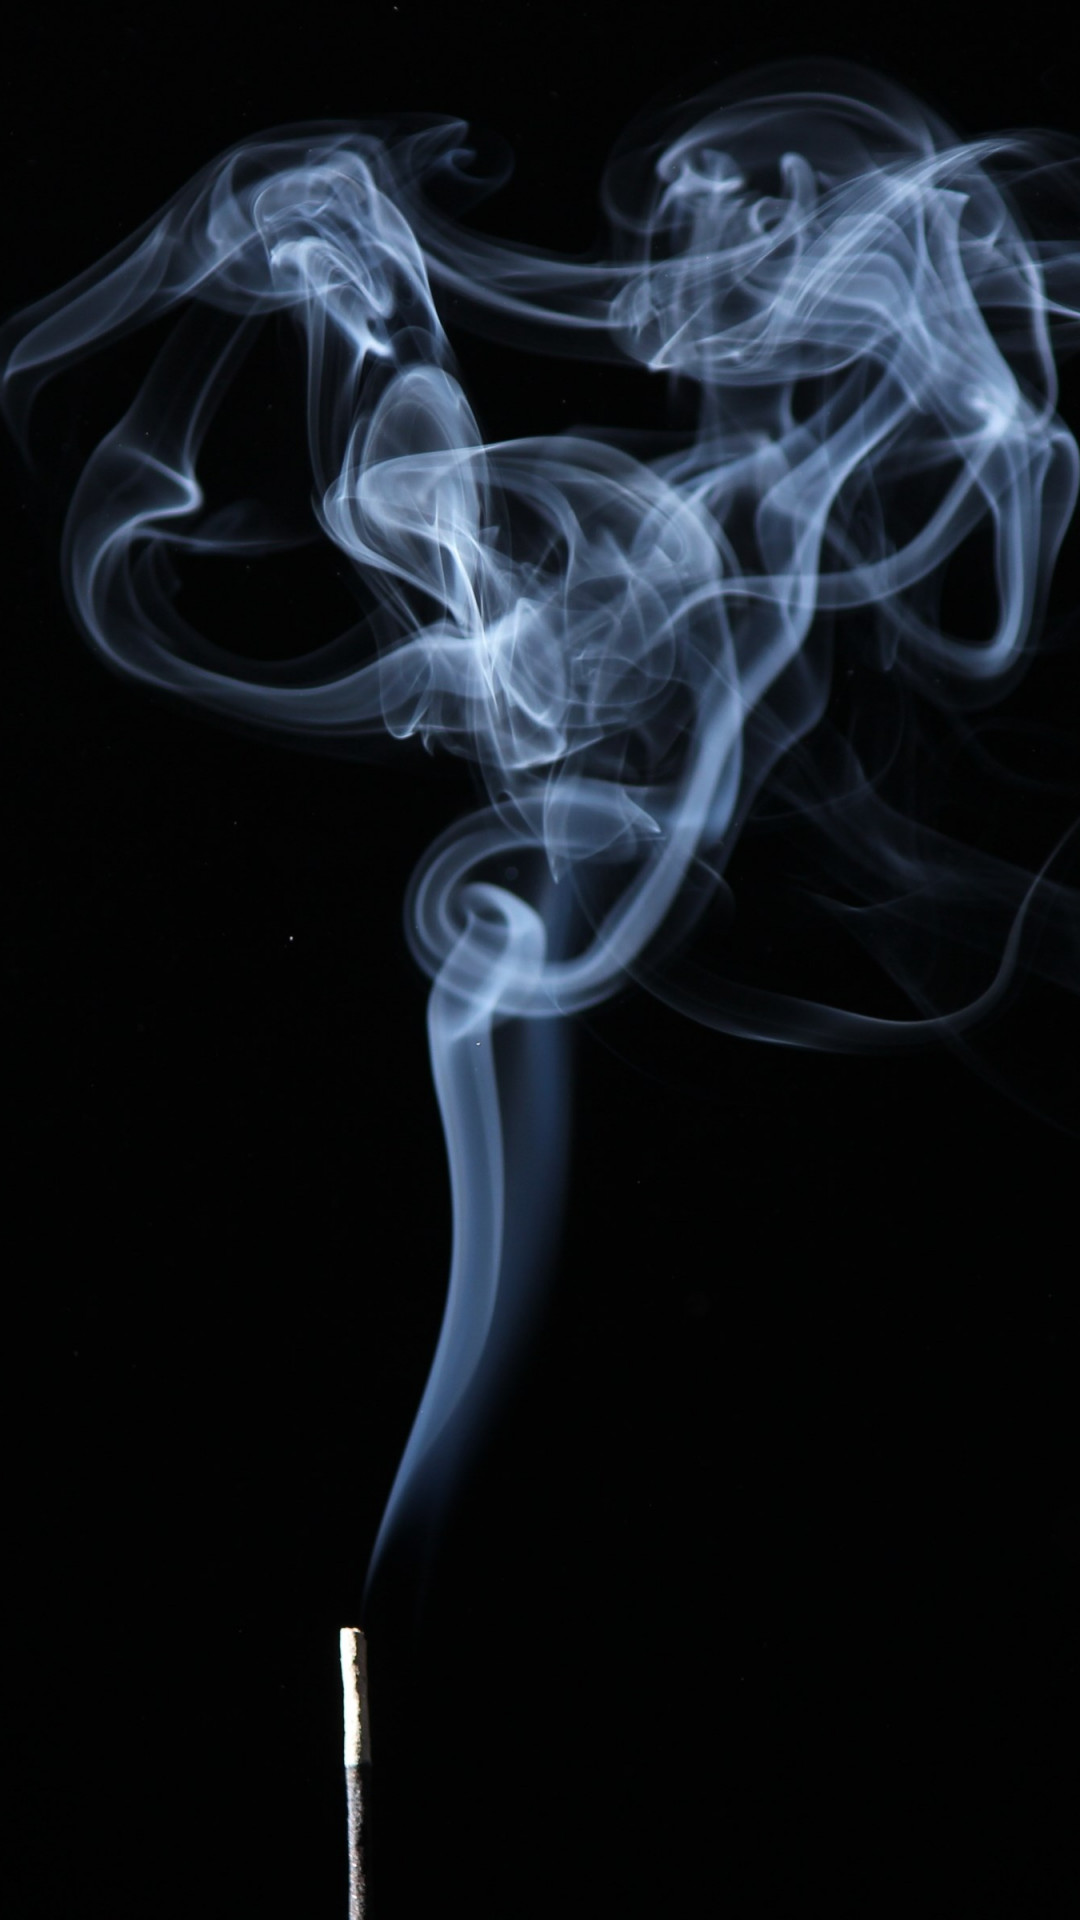 Smoke on black background wallpaper 1080x1920